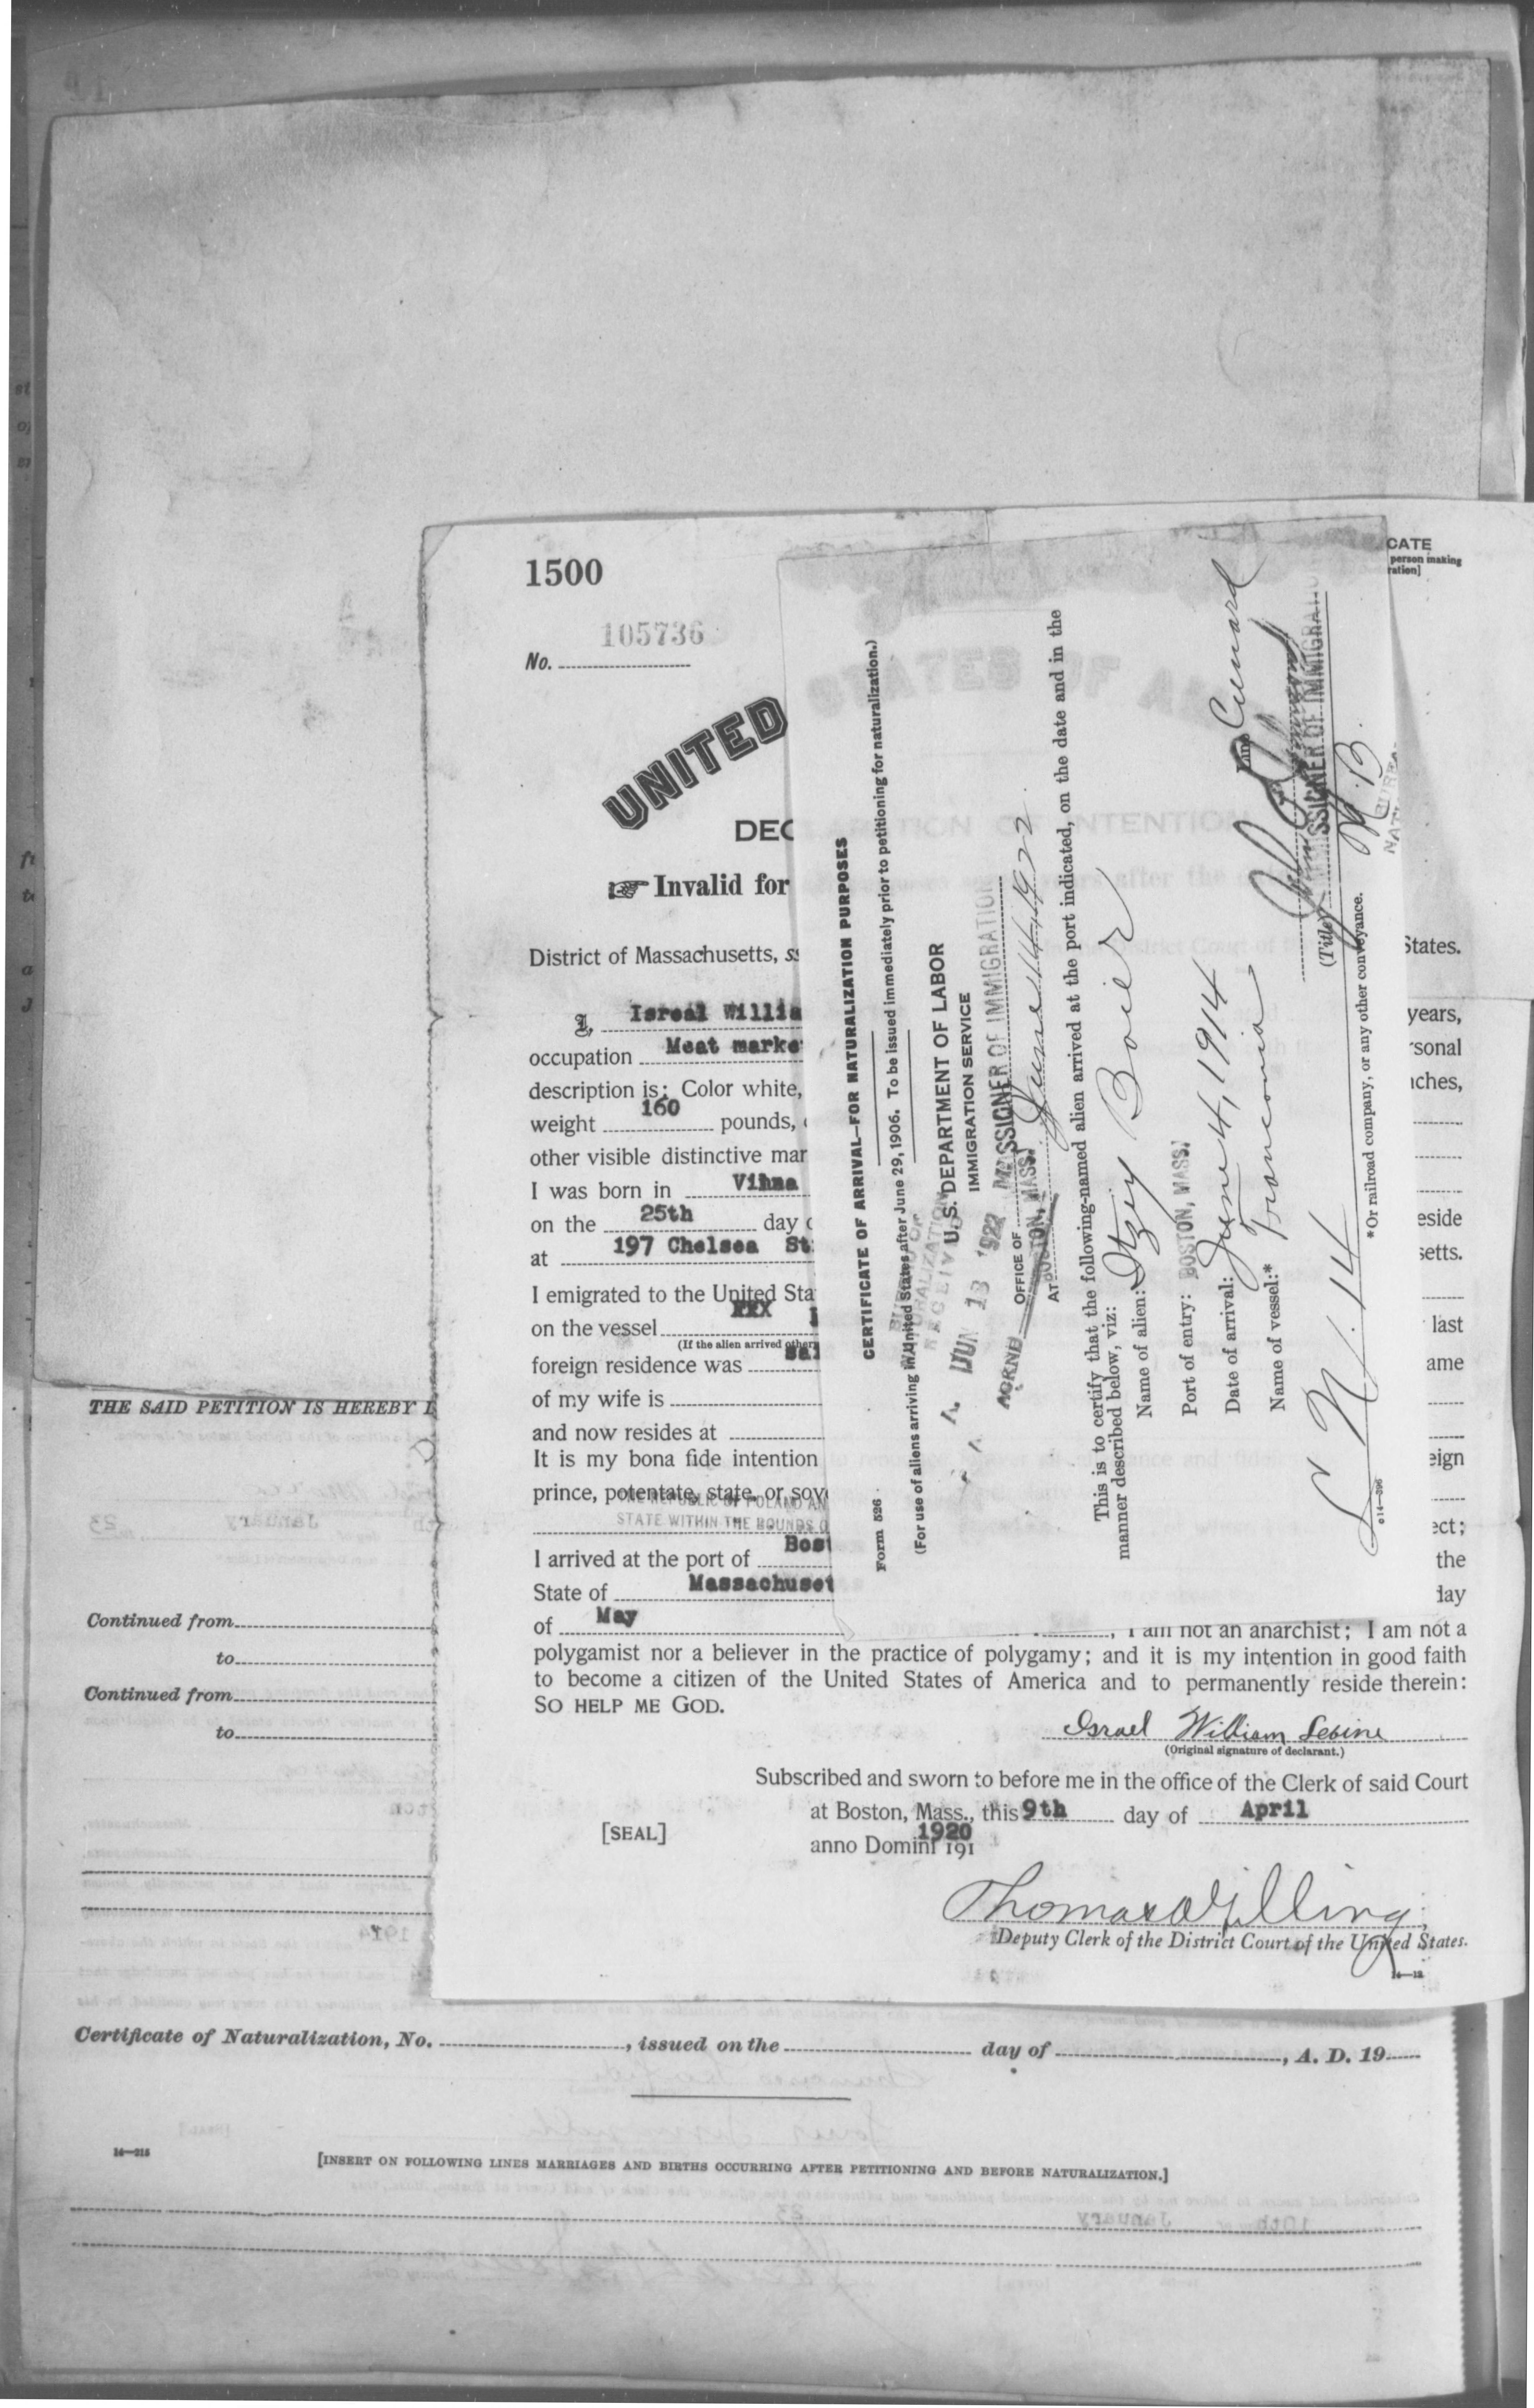 Petition for Naturalization of Itzy Boier